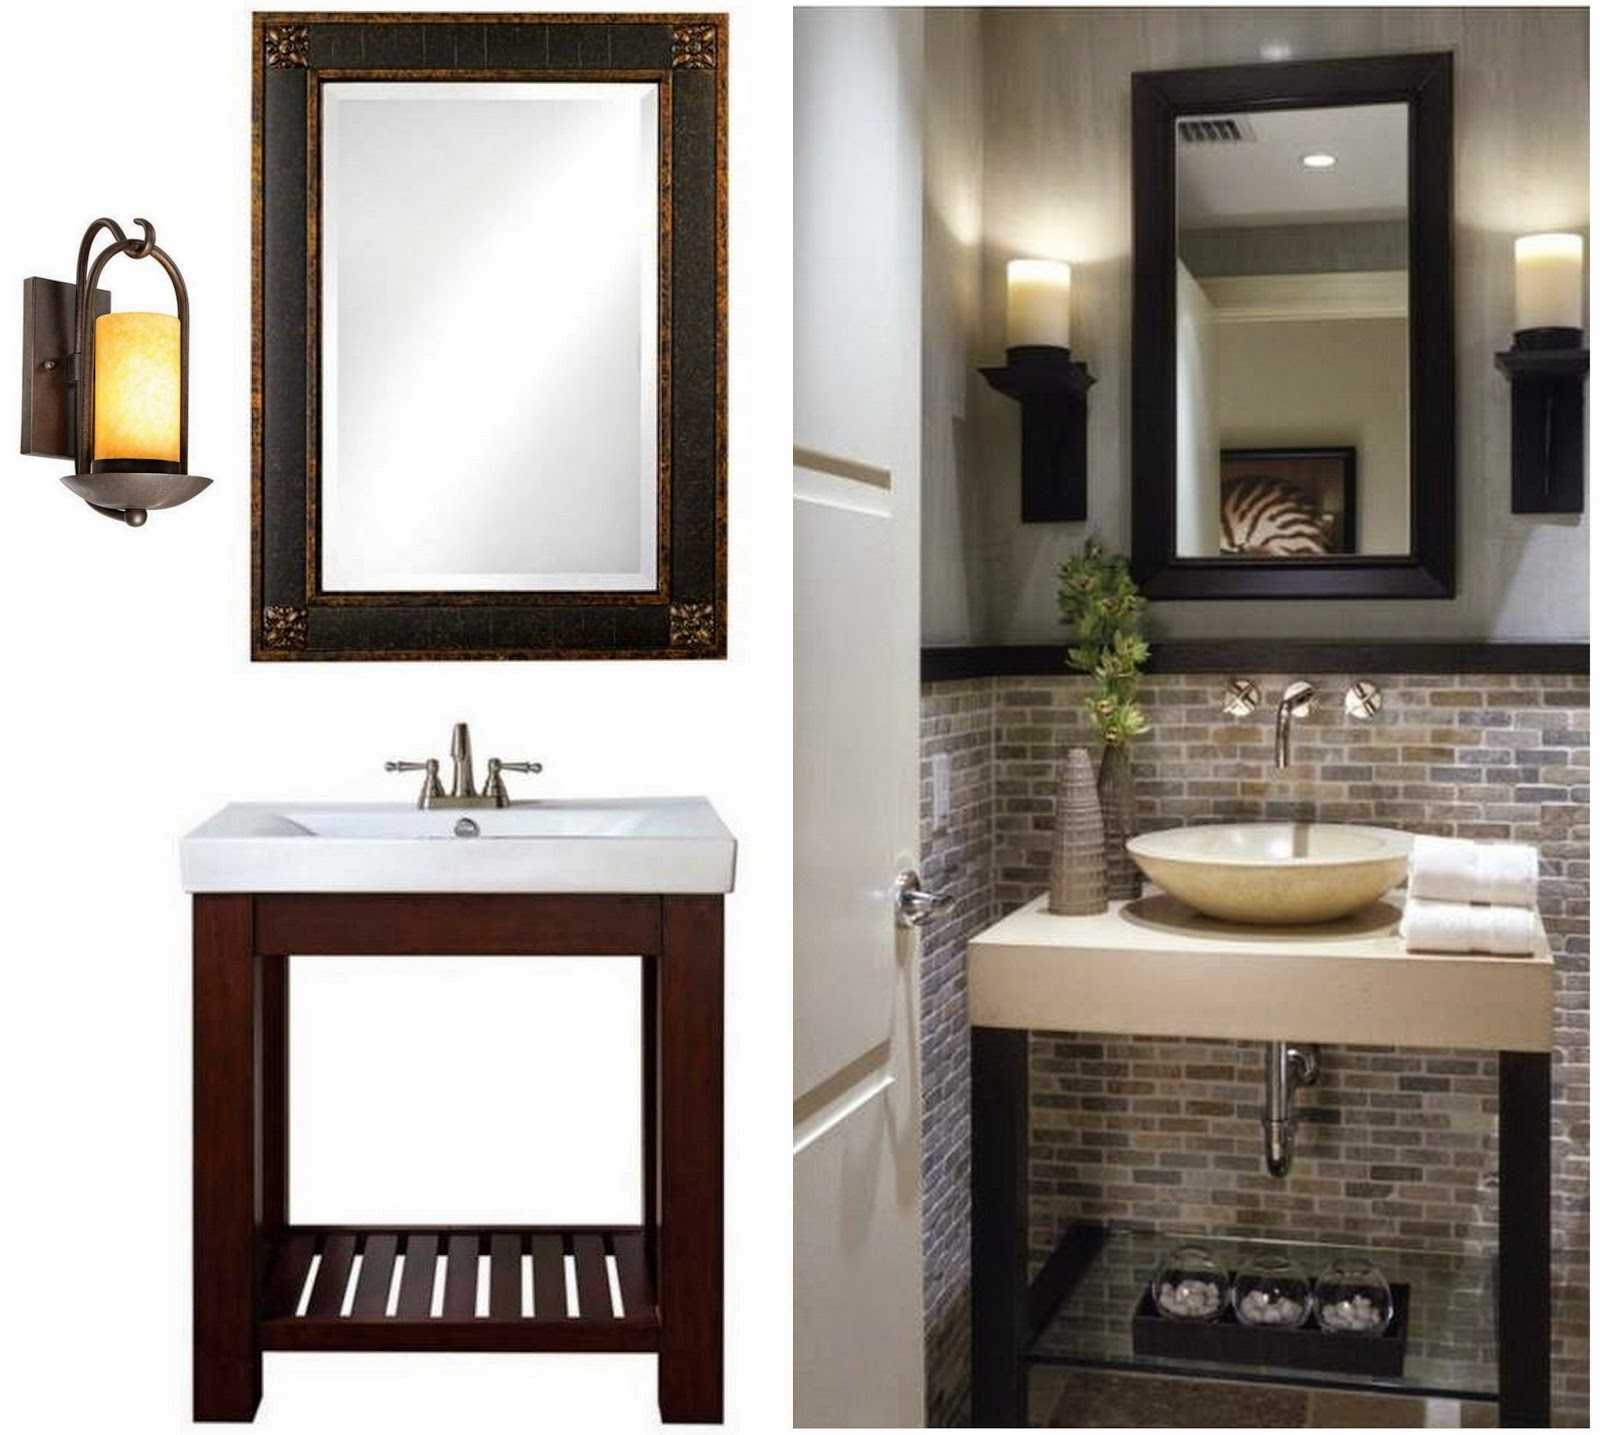 A-Modern-Bathroom-Vanity-In-A-Small-Space